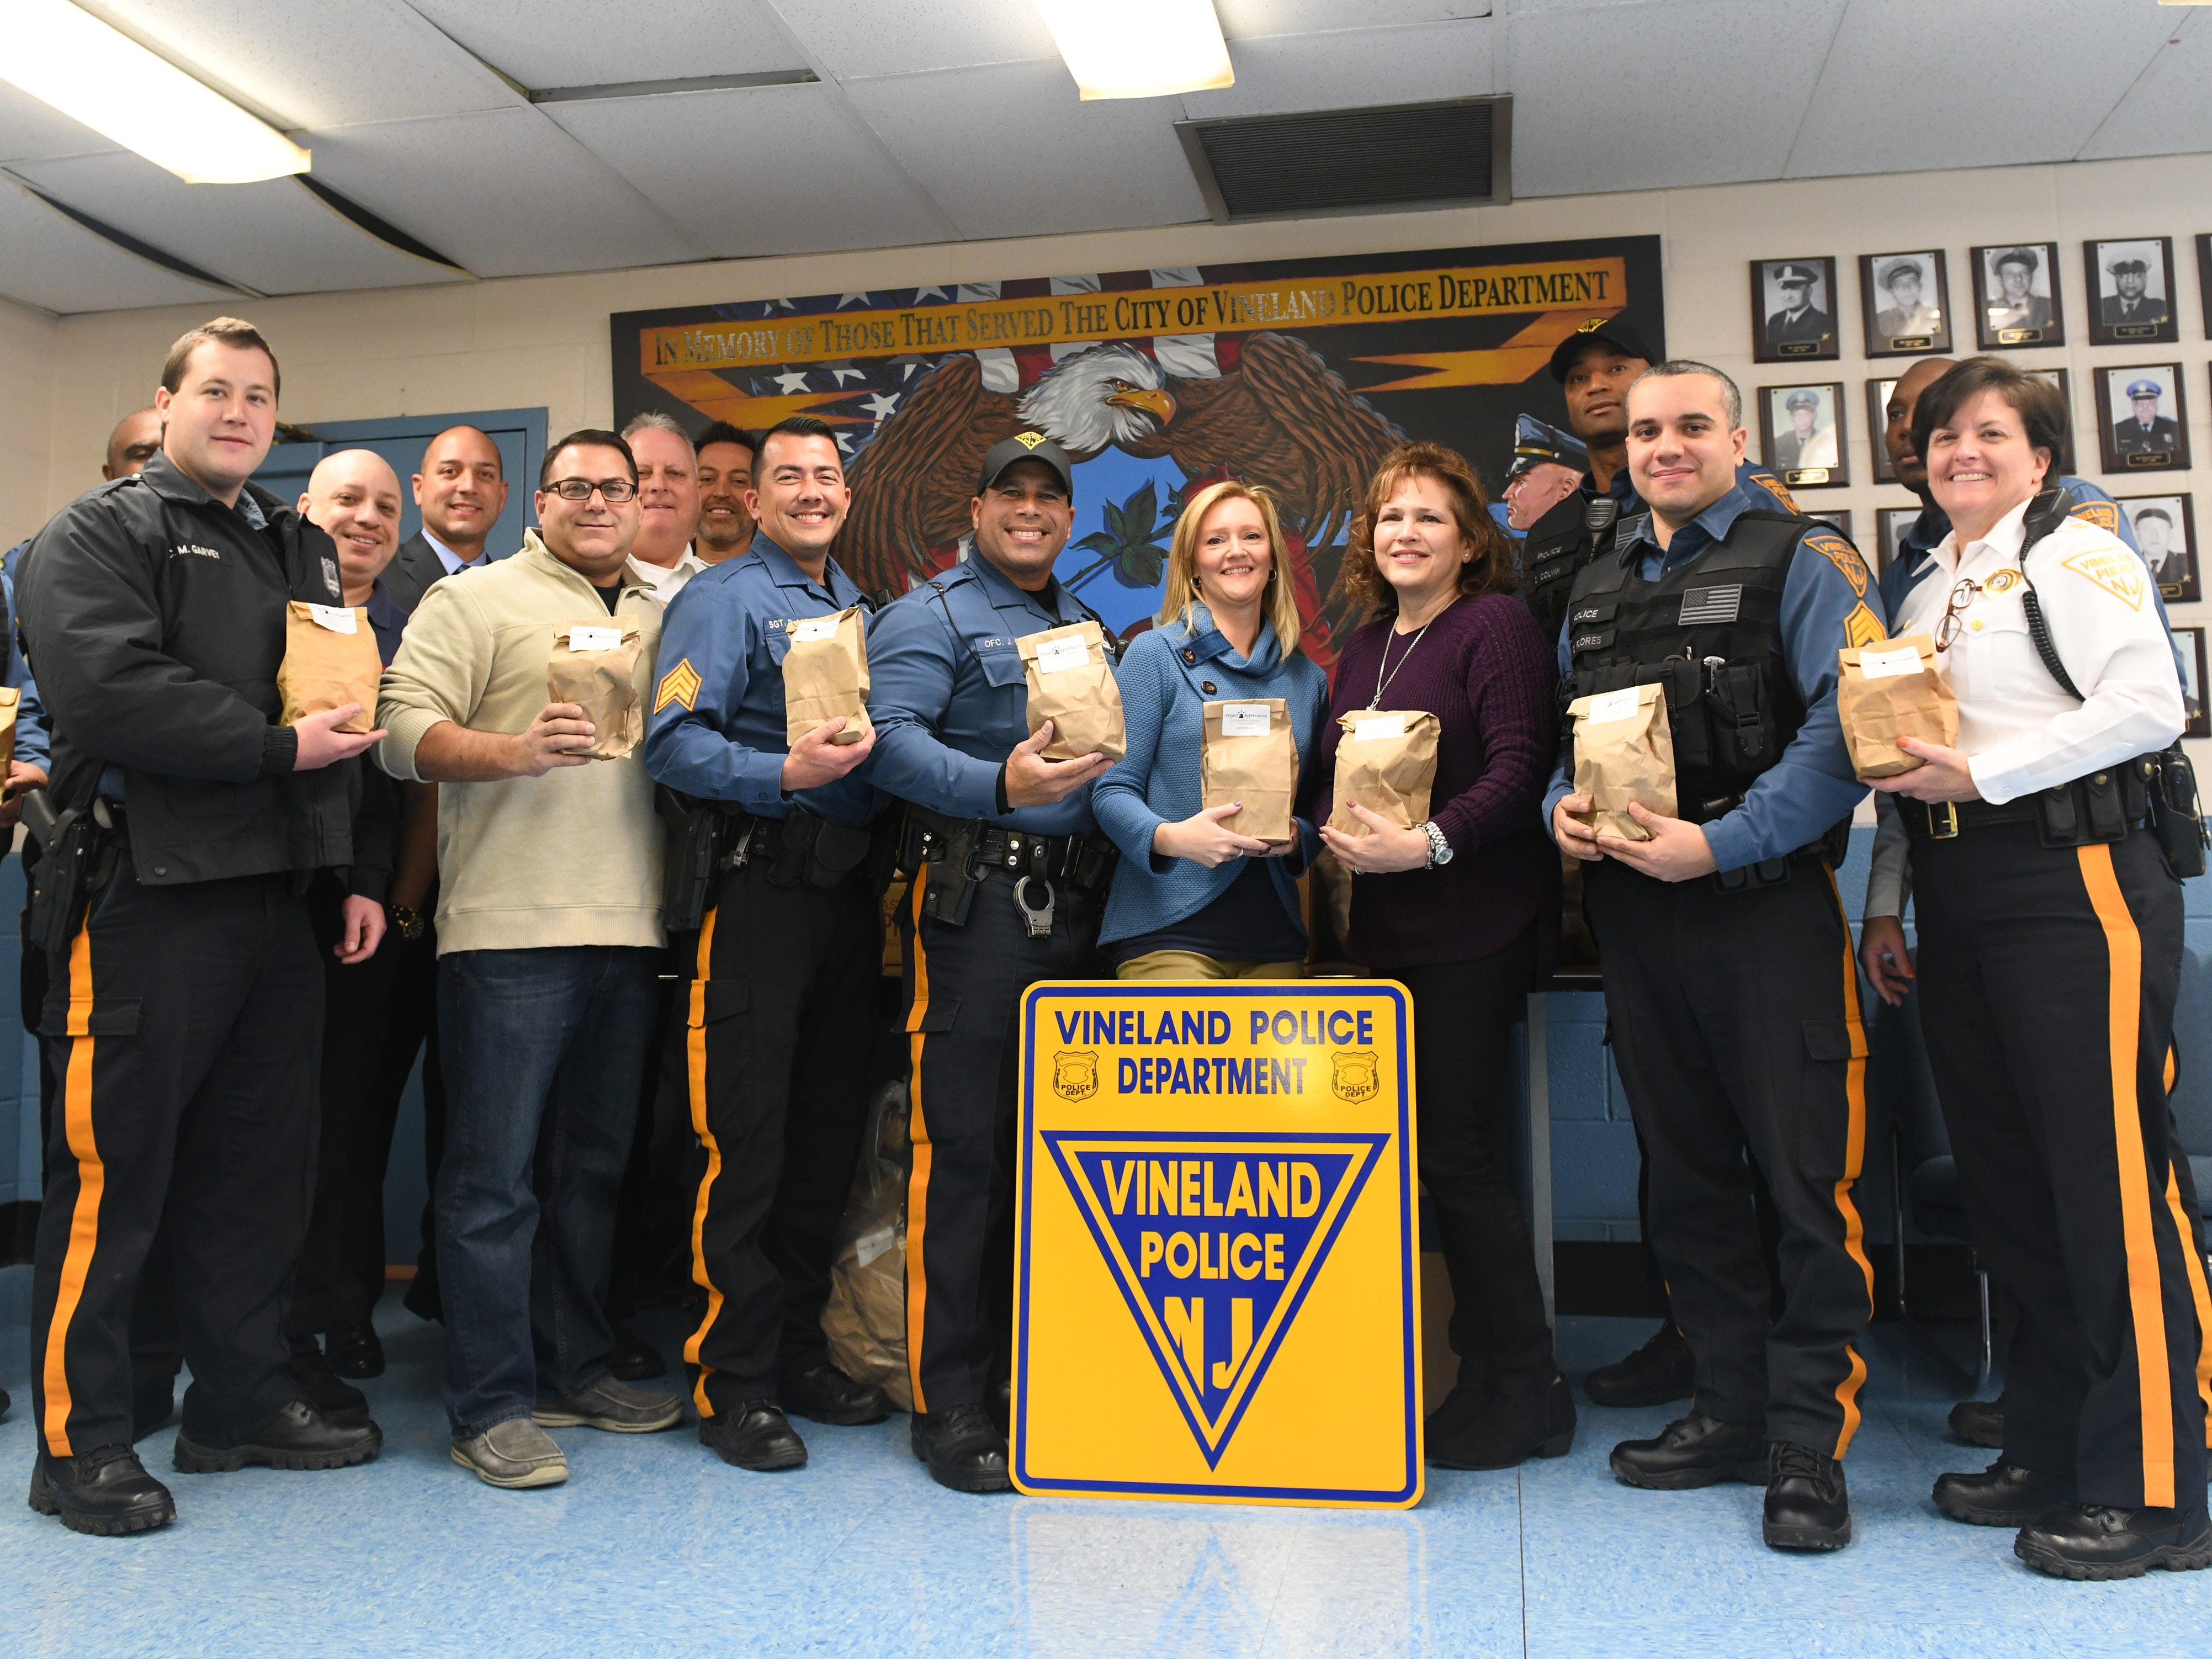 Members of the Vineland Police Department hold appreciation bags that were delivered by Volunteer Center of South Jersey staff members Maria Velez and Gabriella Smick on Wednesday, November 28, 2018.